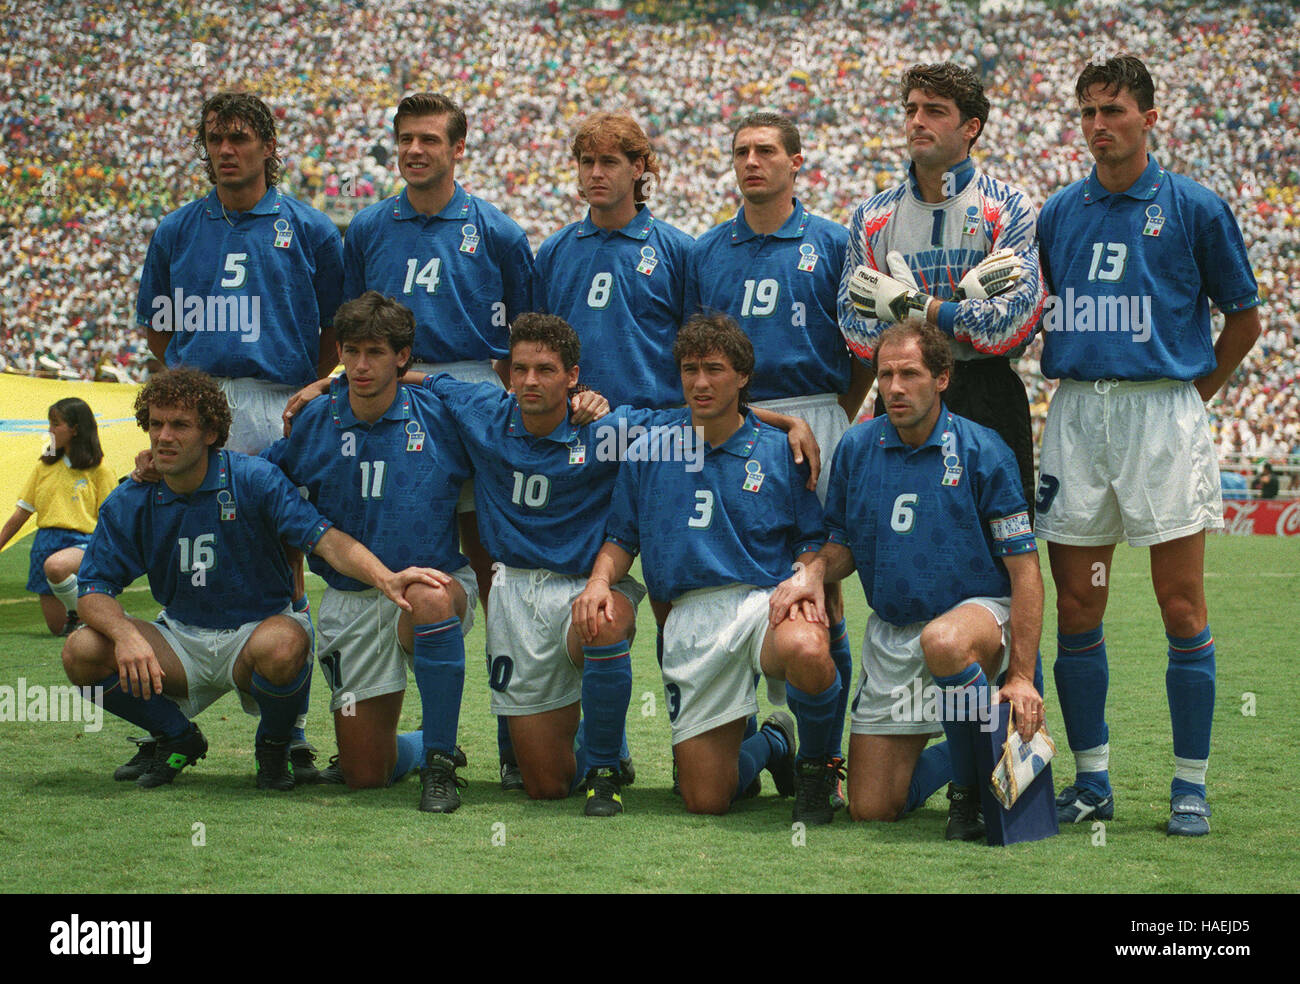 ITALY WORLD CUP FINAL 1994 17 July 1994